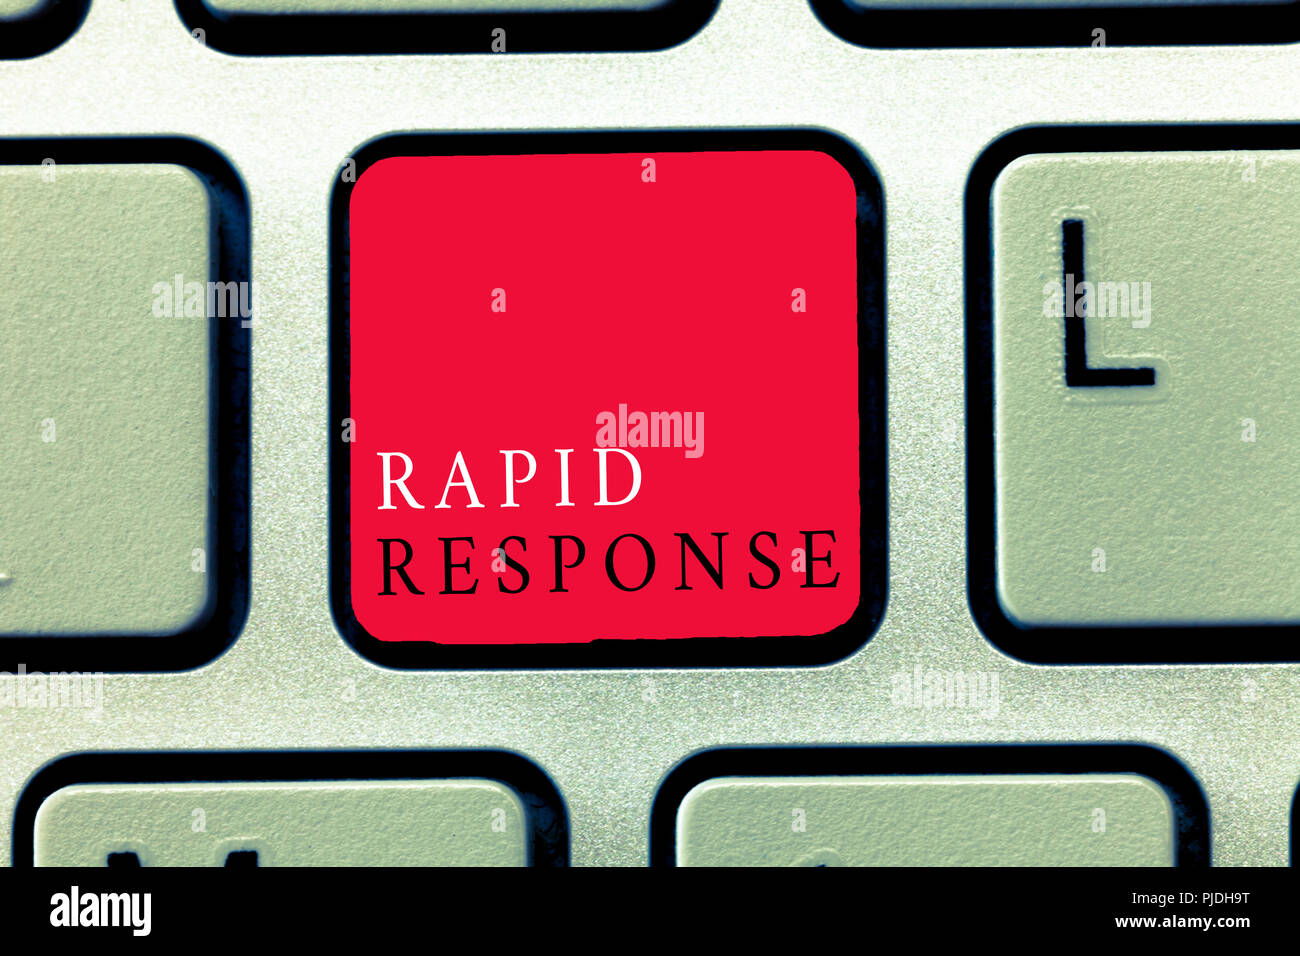 Word writing text Rapid Response. Business concept for Medical emergency team Quick assistance during disaster. - Stock Image